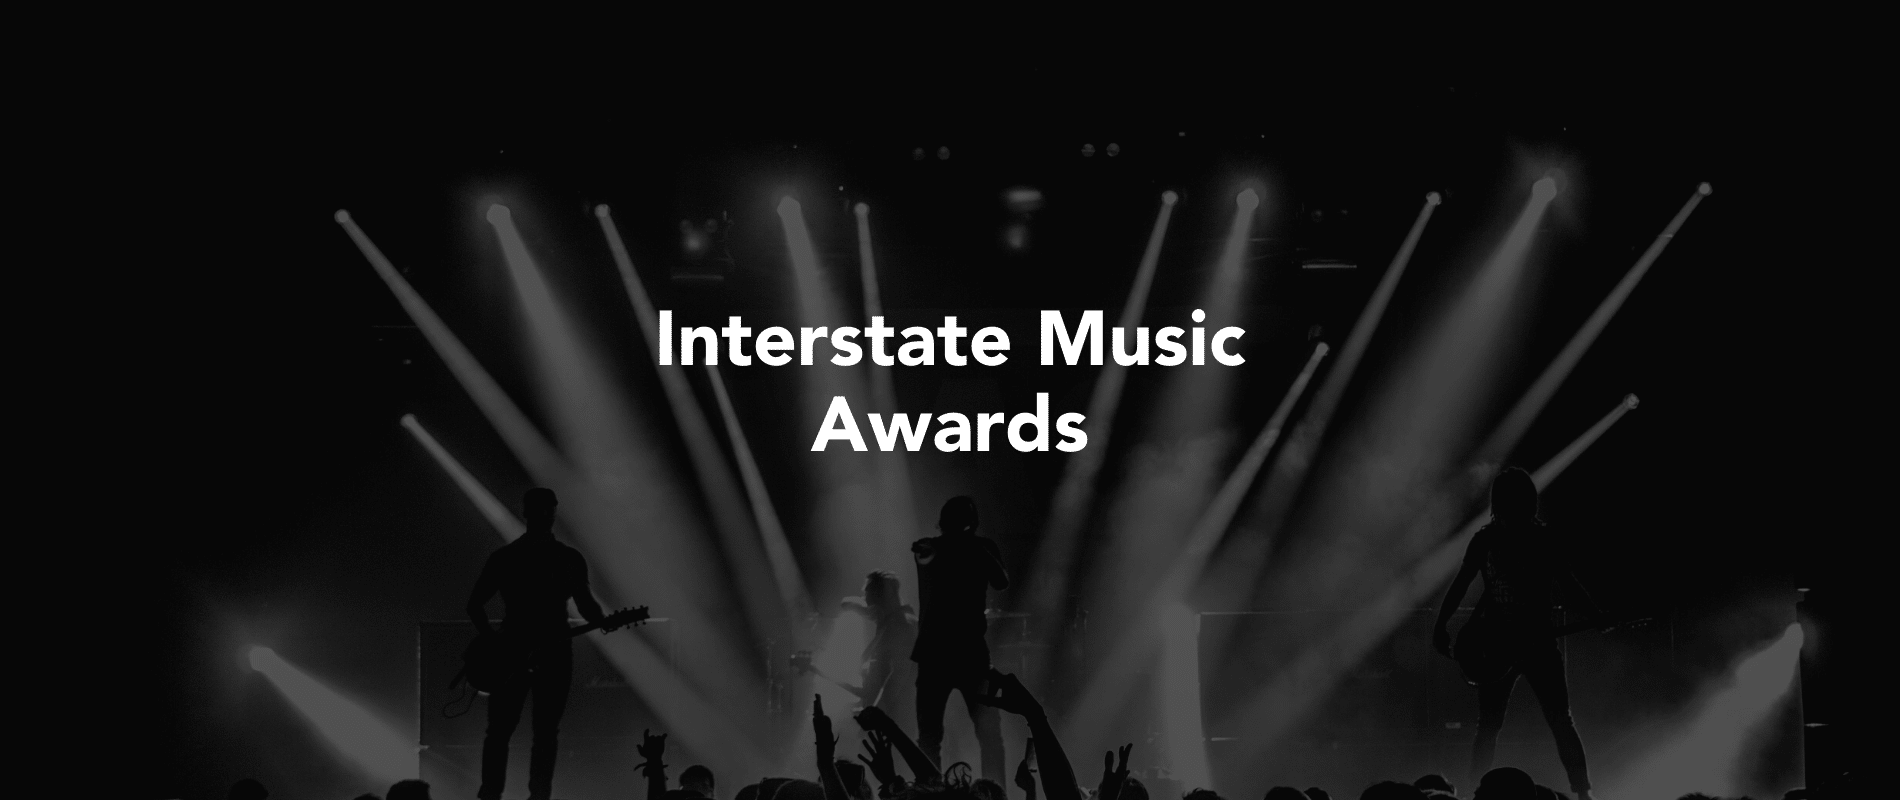 The Interstate Music Awards